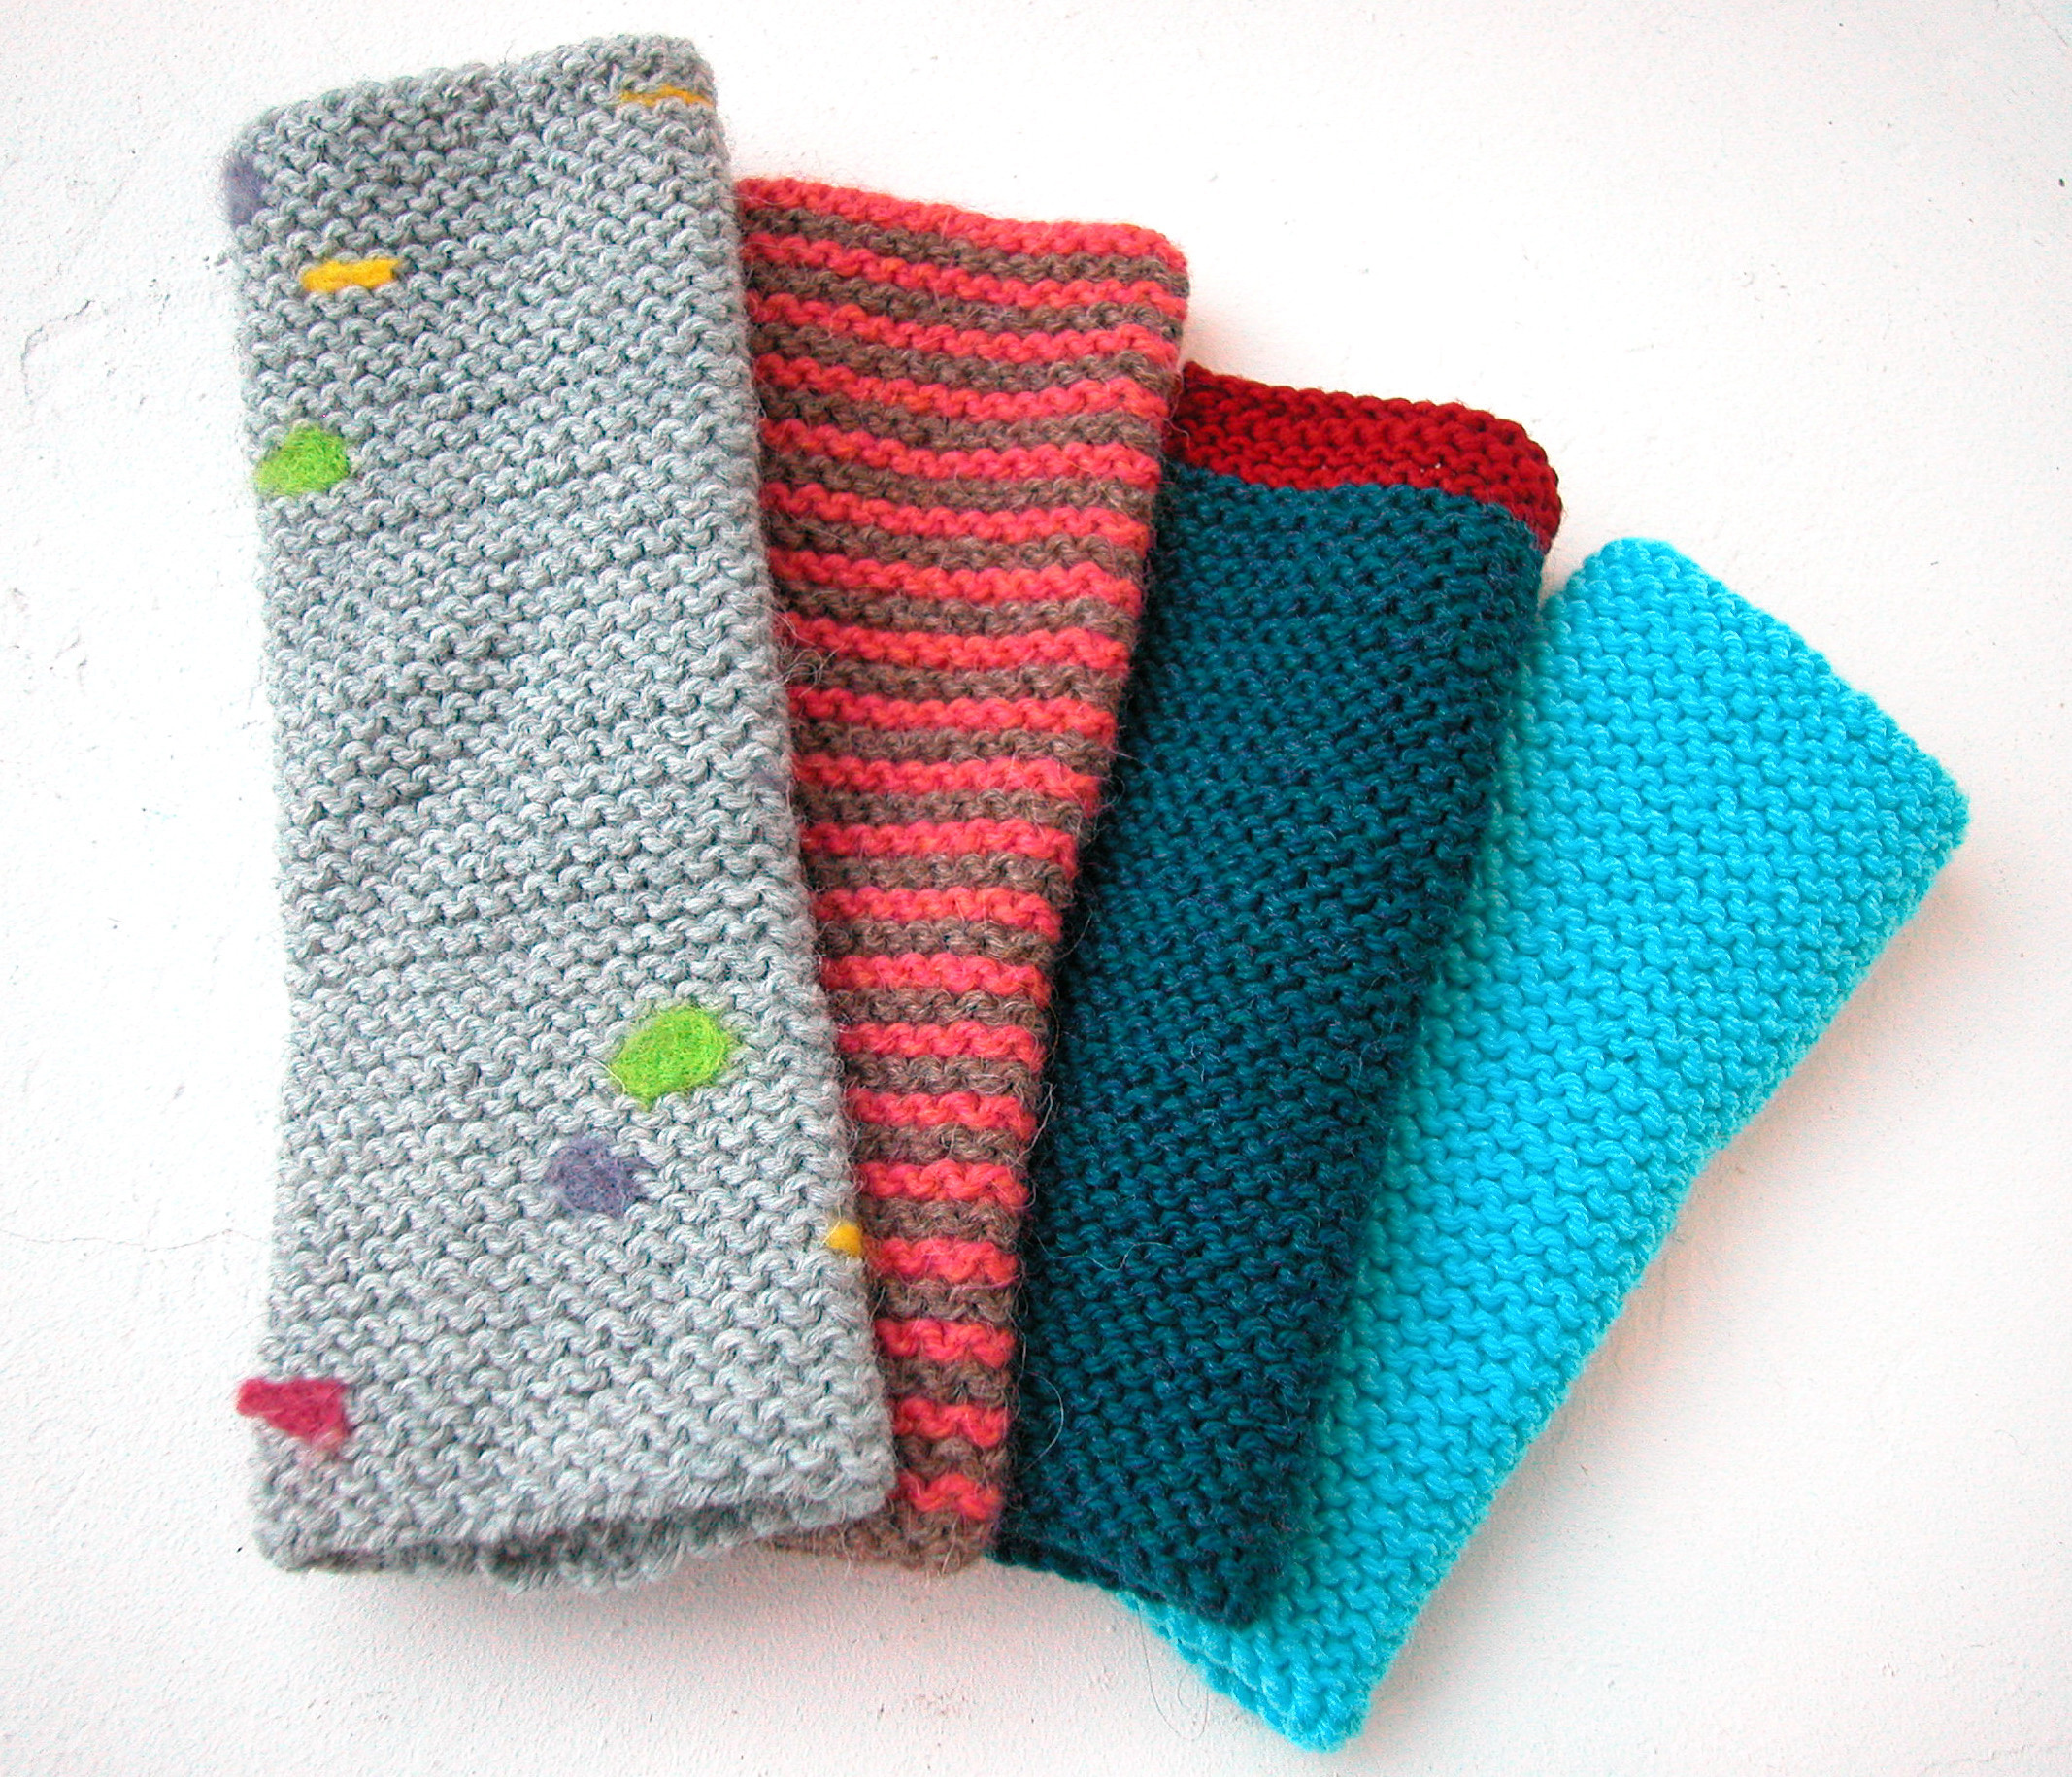 Knit Arm Warmer Pattern : arm warmer pattern the knit cafe